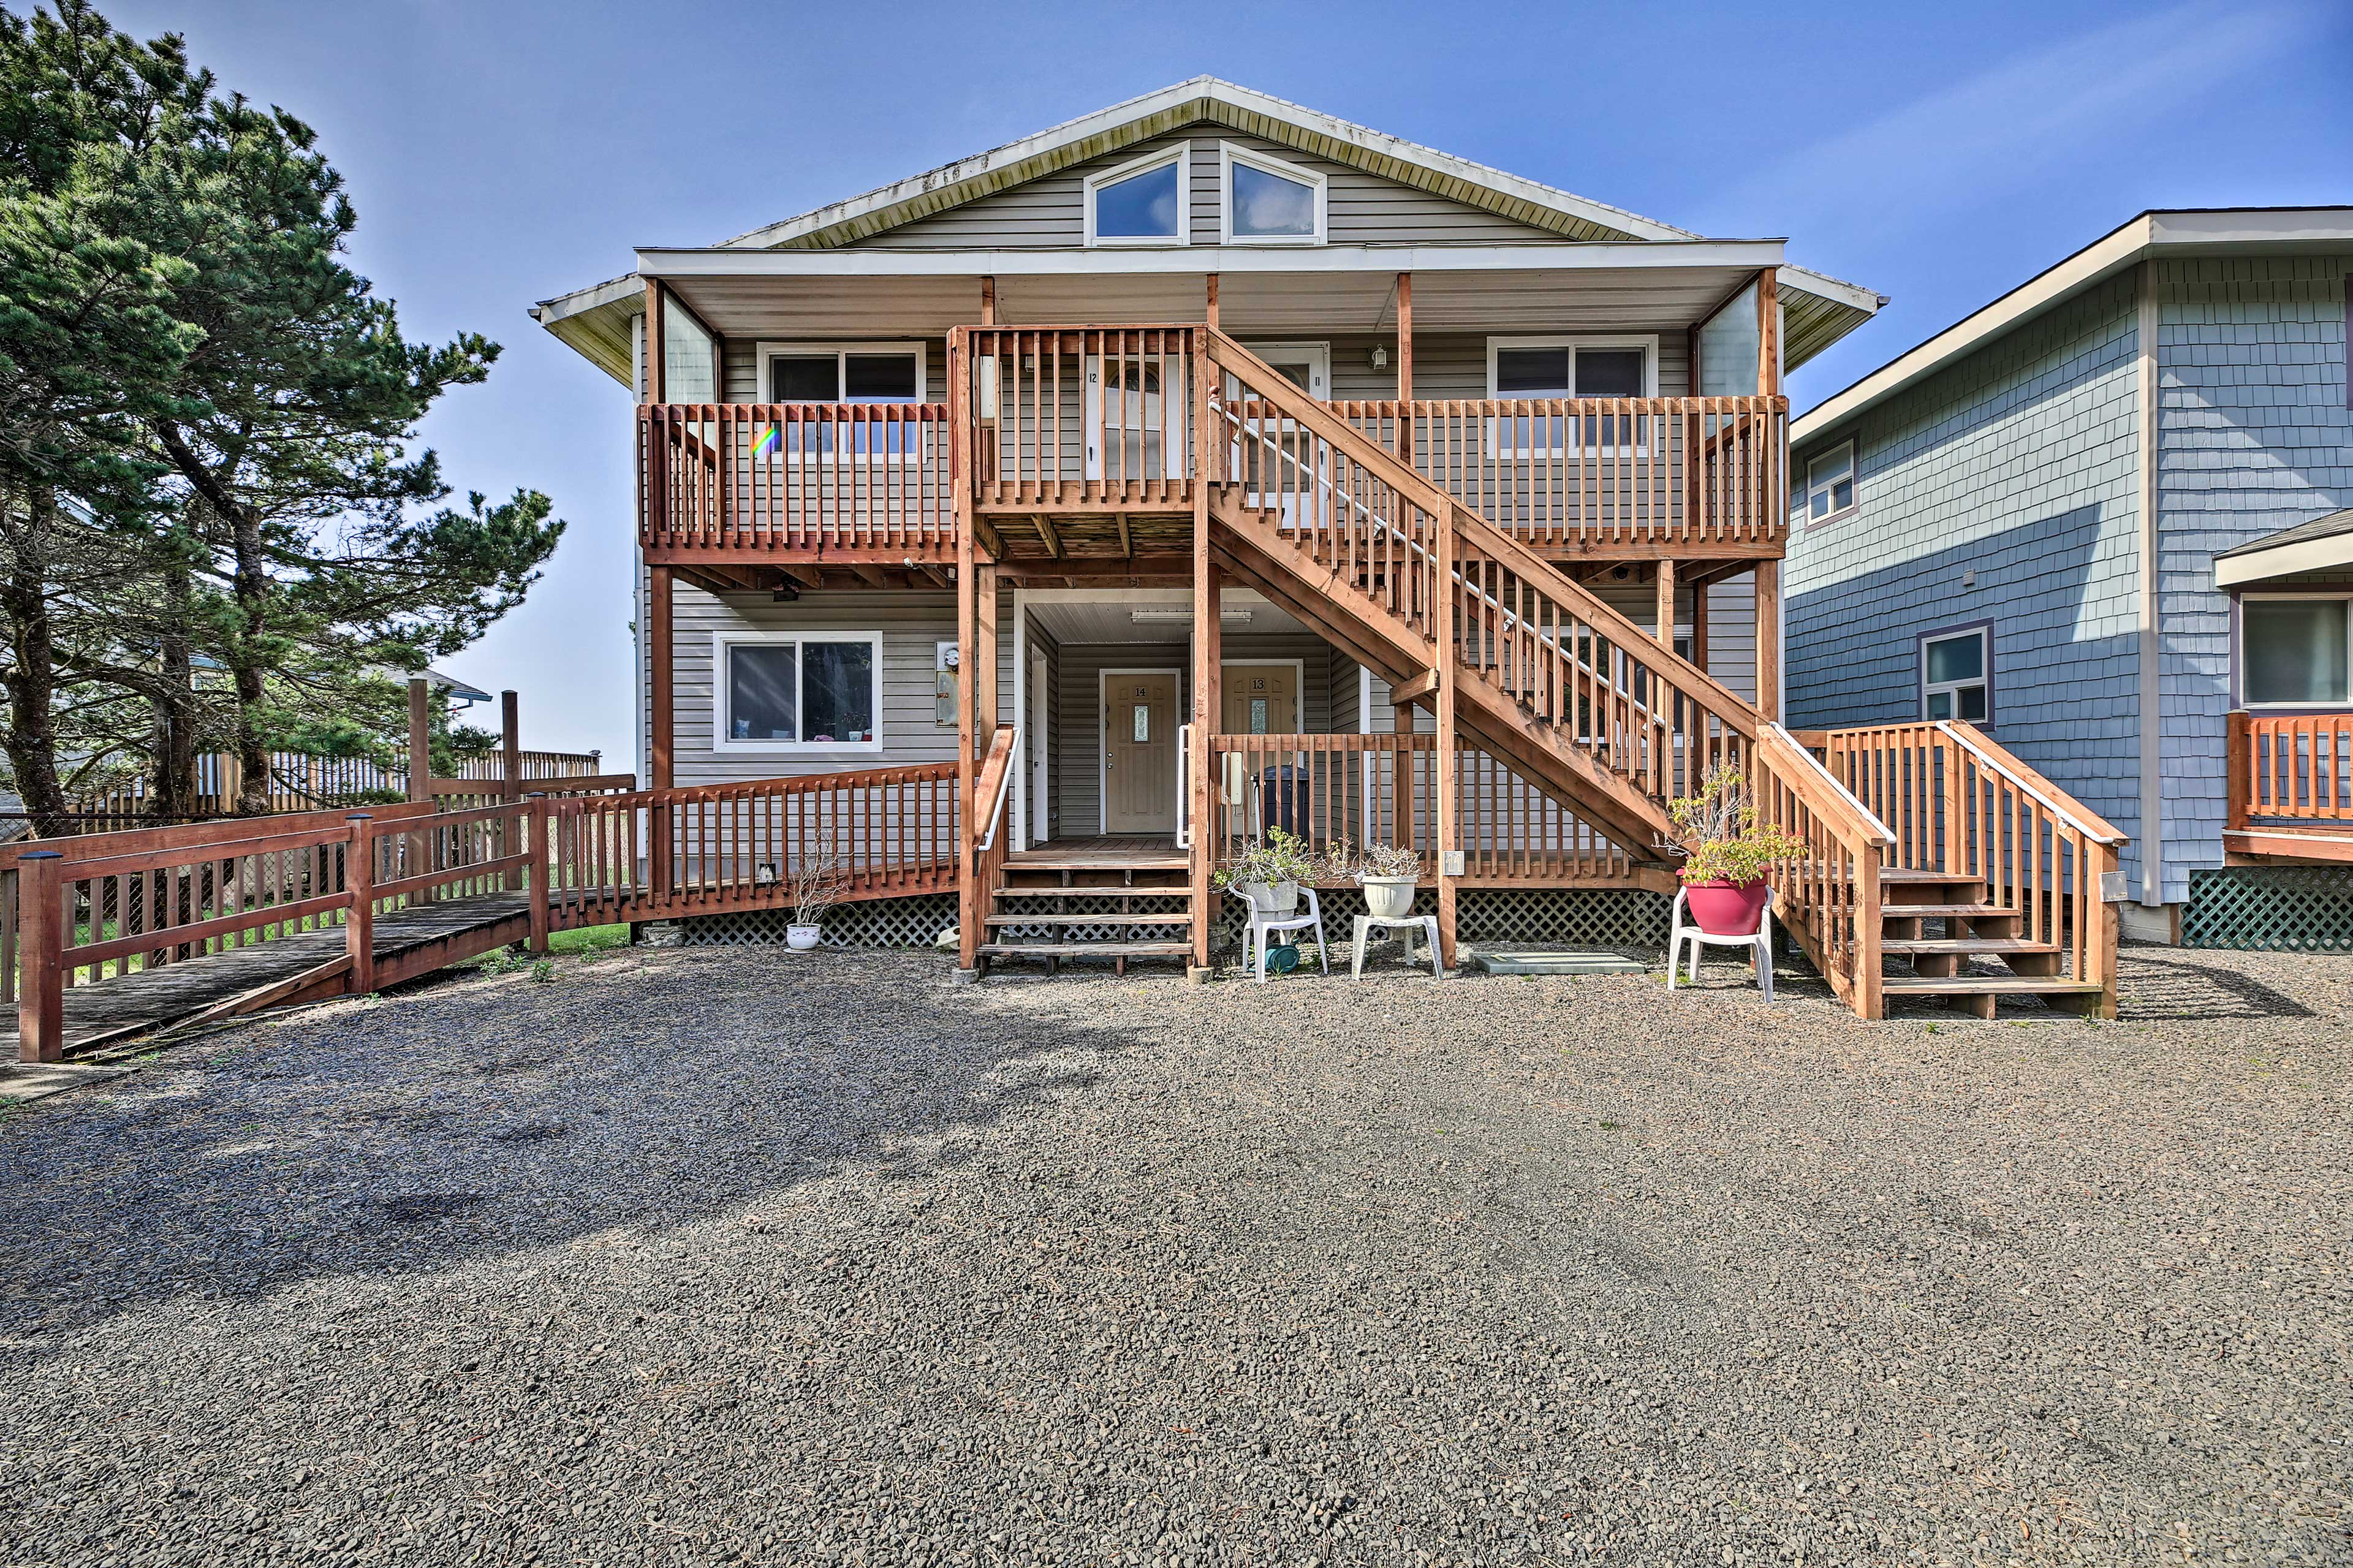 This home features modern conveniences like wireless internet access.